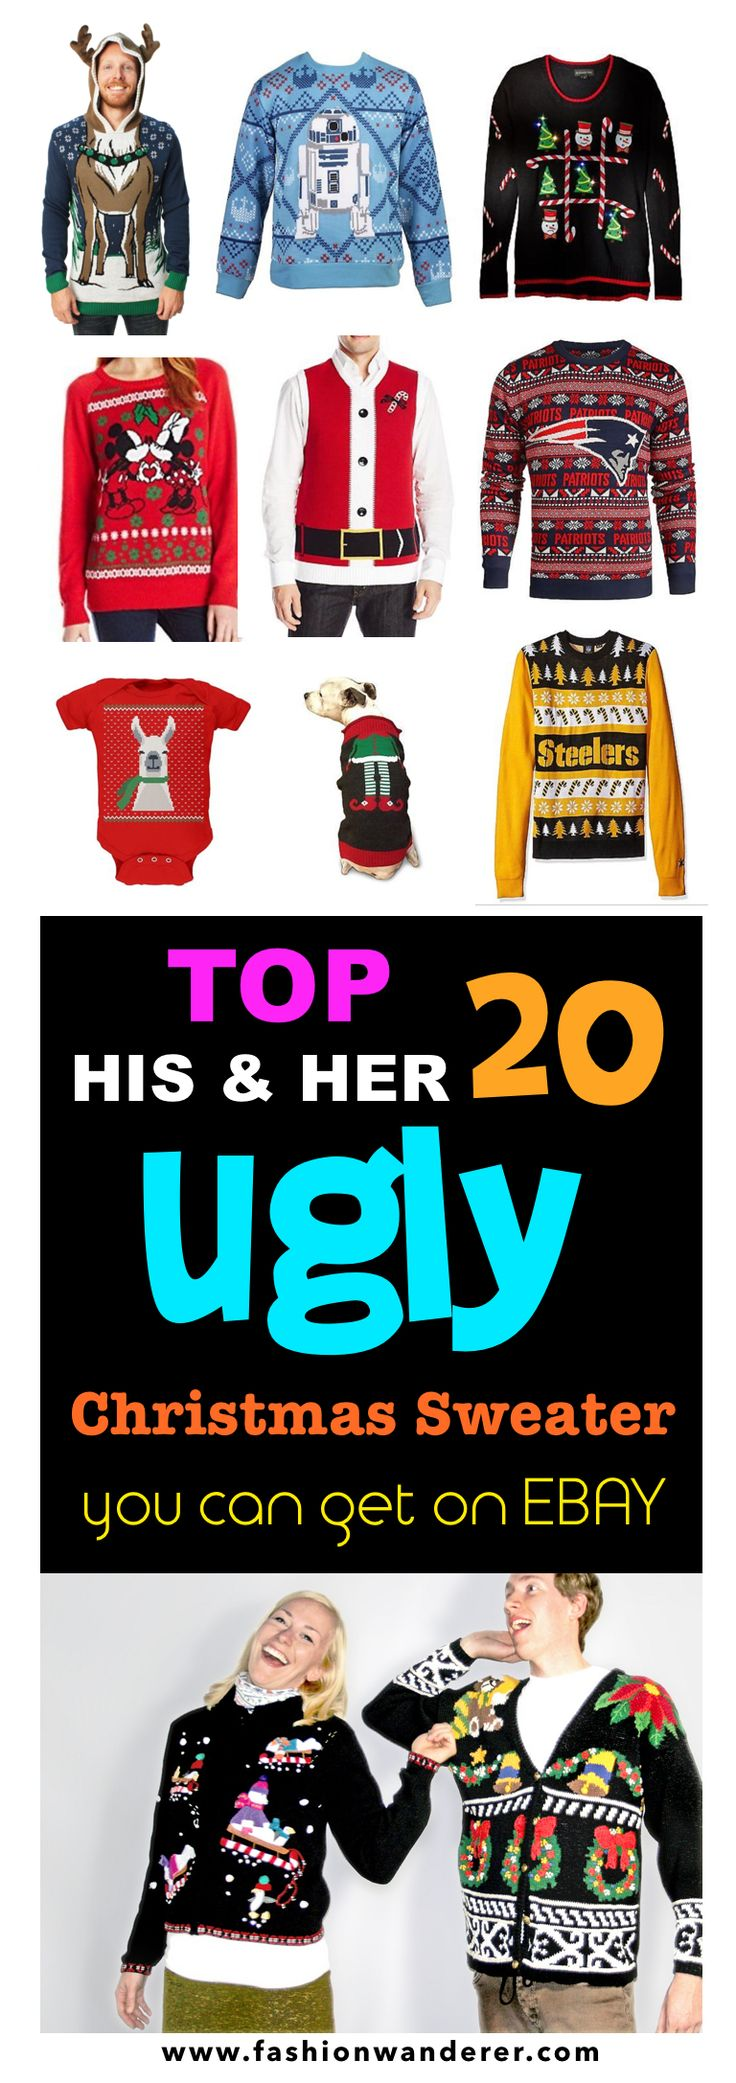 his & hers ugly Christmas sweaters. Star Wars, Funny, Couple, Cute, Inappropriate, Reindeer,Baby, Grinch, With Lights all sorts of various sweaters you can choose from! Win the party awards.